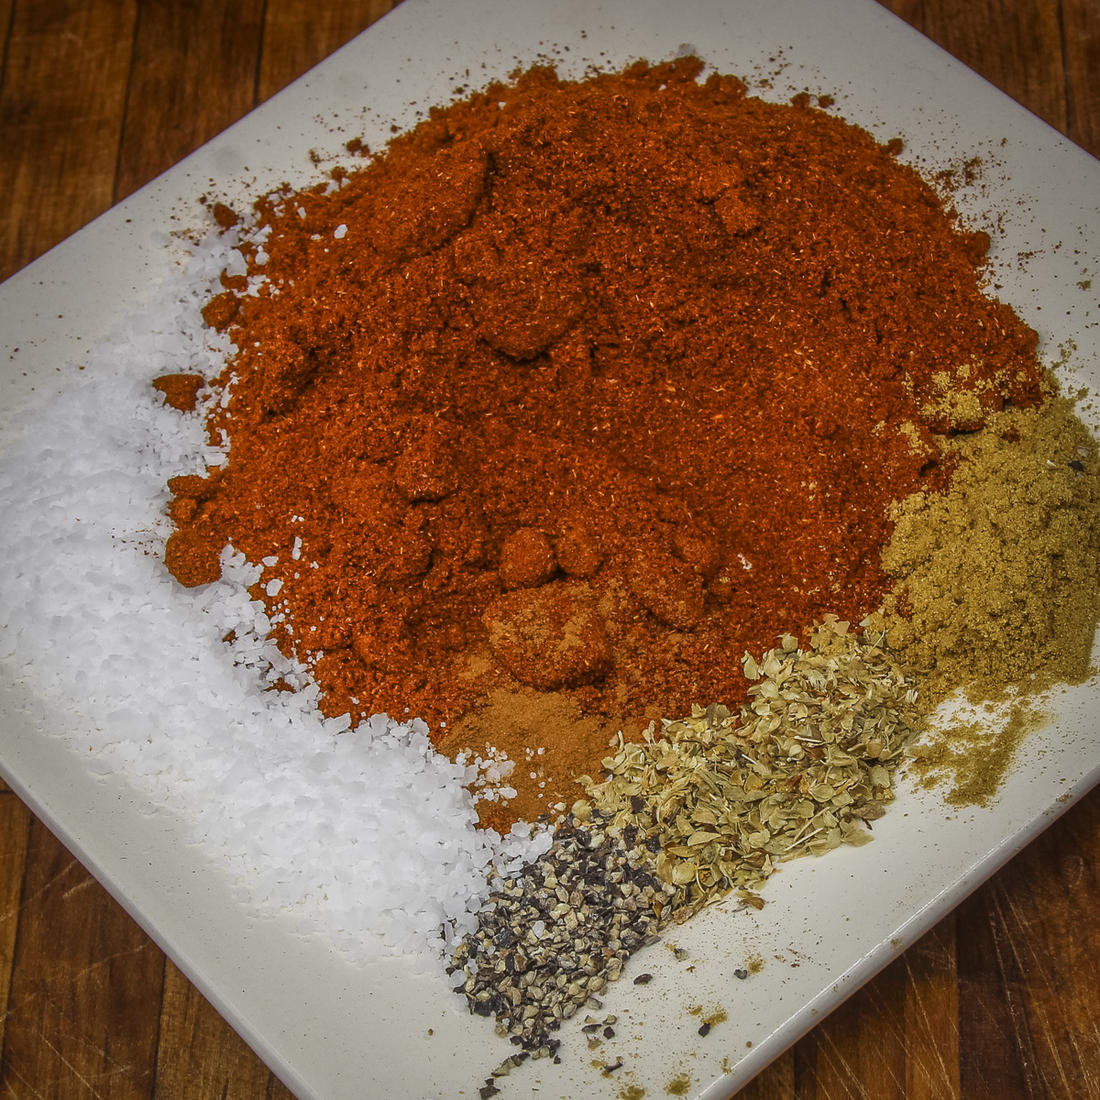 Measure the spices and seasonings.